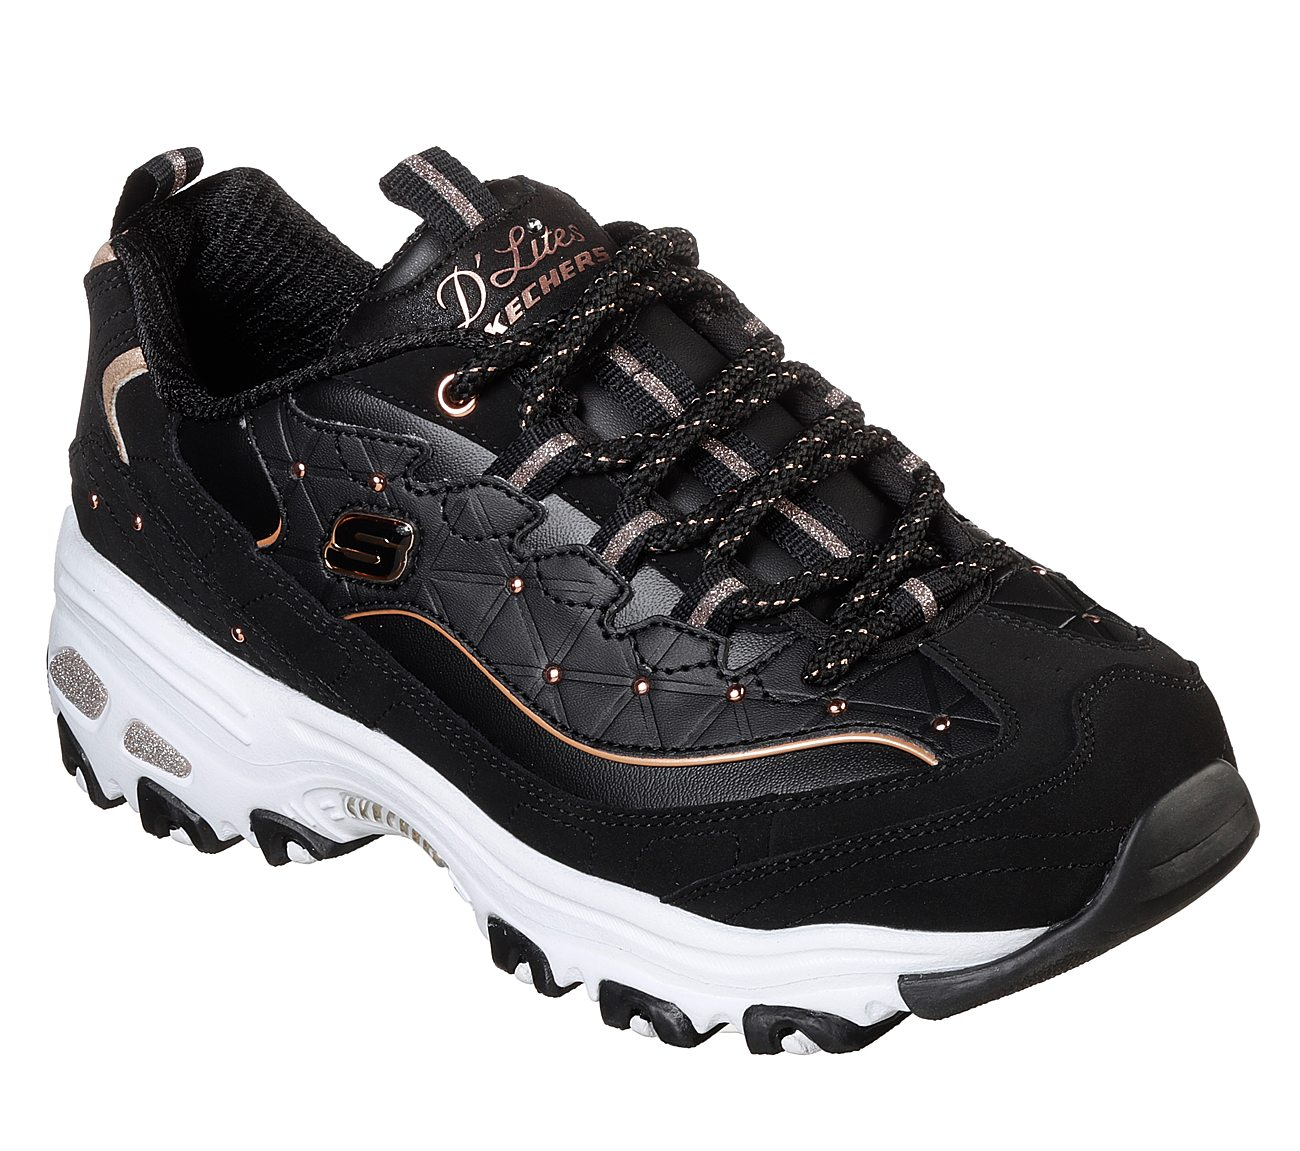 bf7ef1e0d95a Buy SKECHERS D Lites - Glamour Feels D Lites Shoes only  70.00